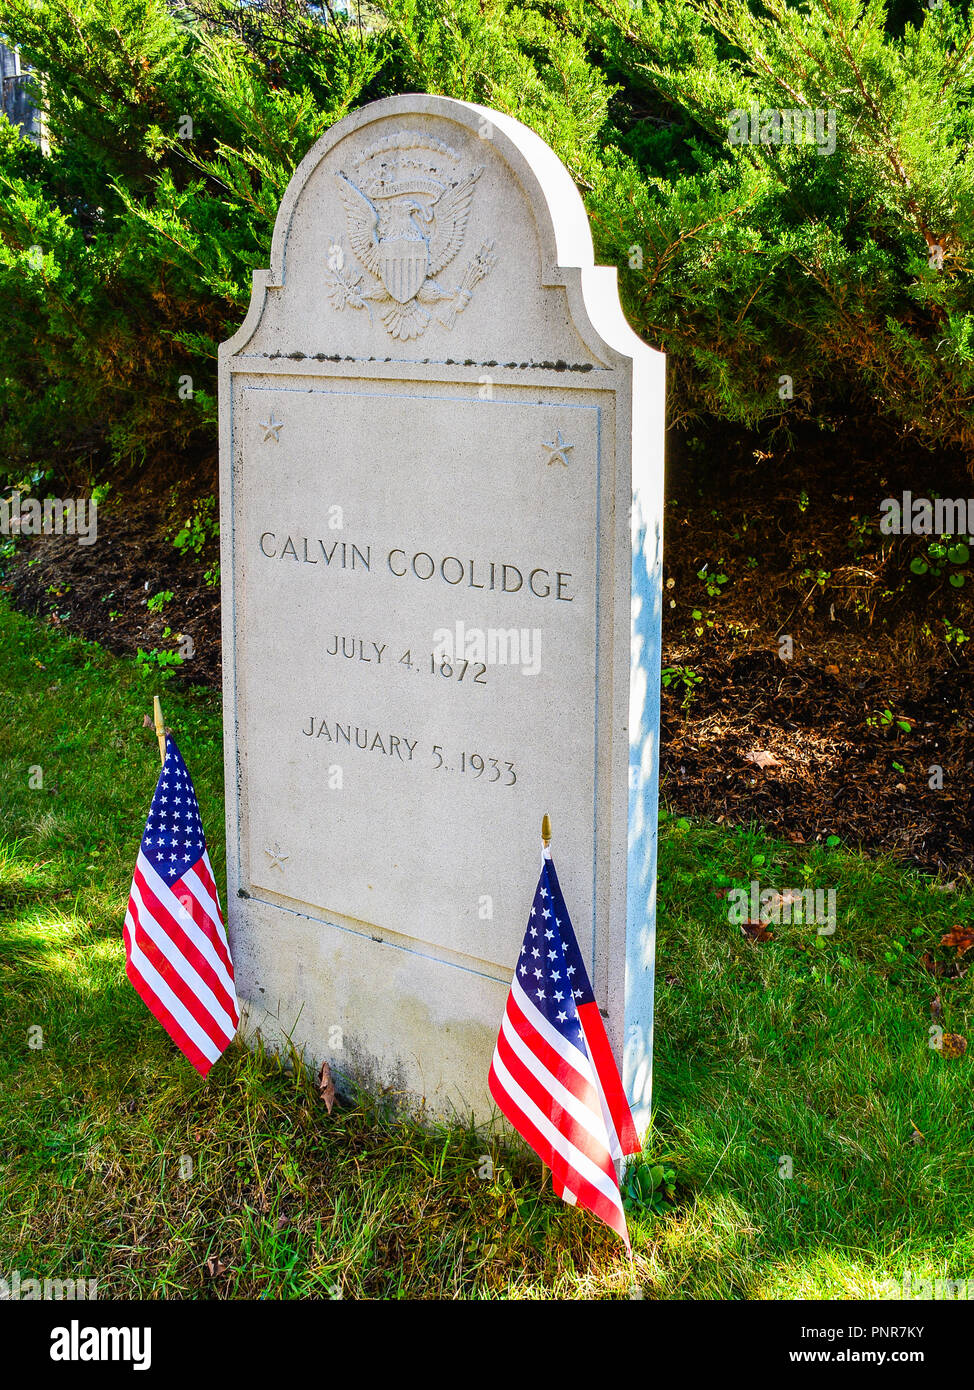 Plymouth Notch, VT, USA - Headstone, Calvin Coolidge. Born on July 4, 1872, Calvin Coolidge  was the 30th President of the United States. Stock Photo